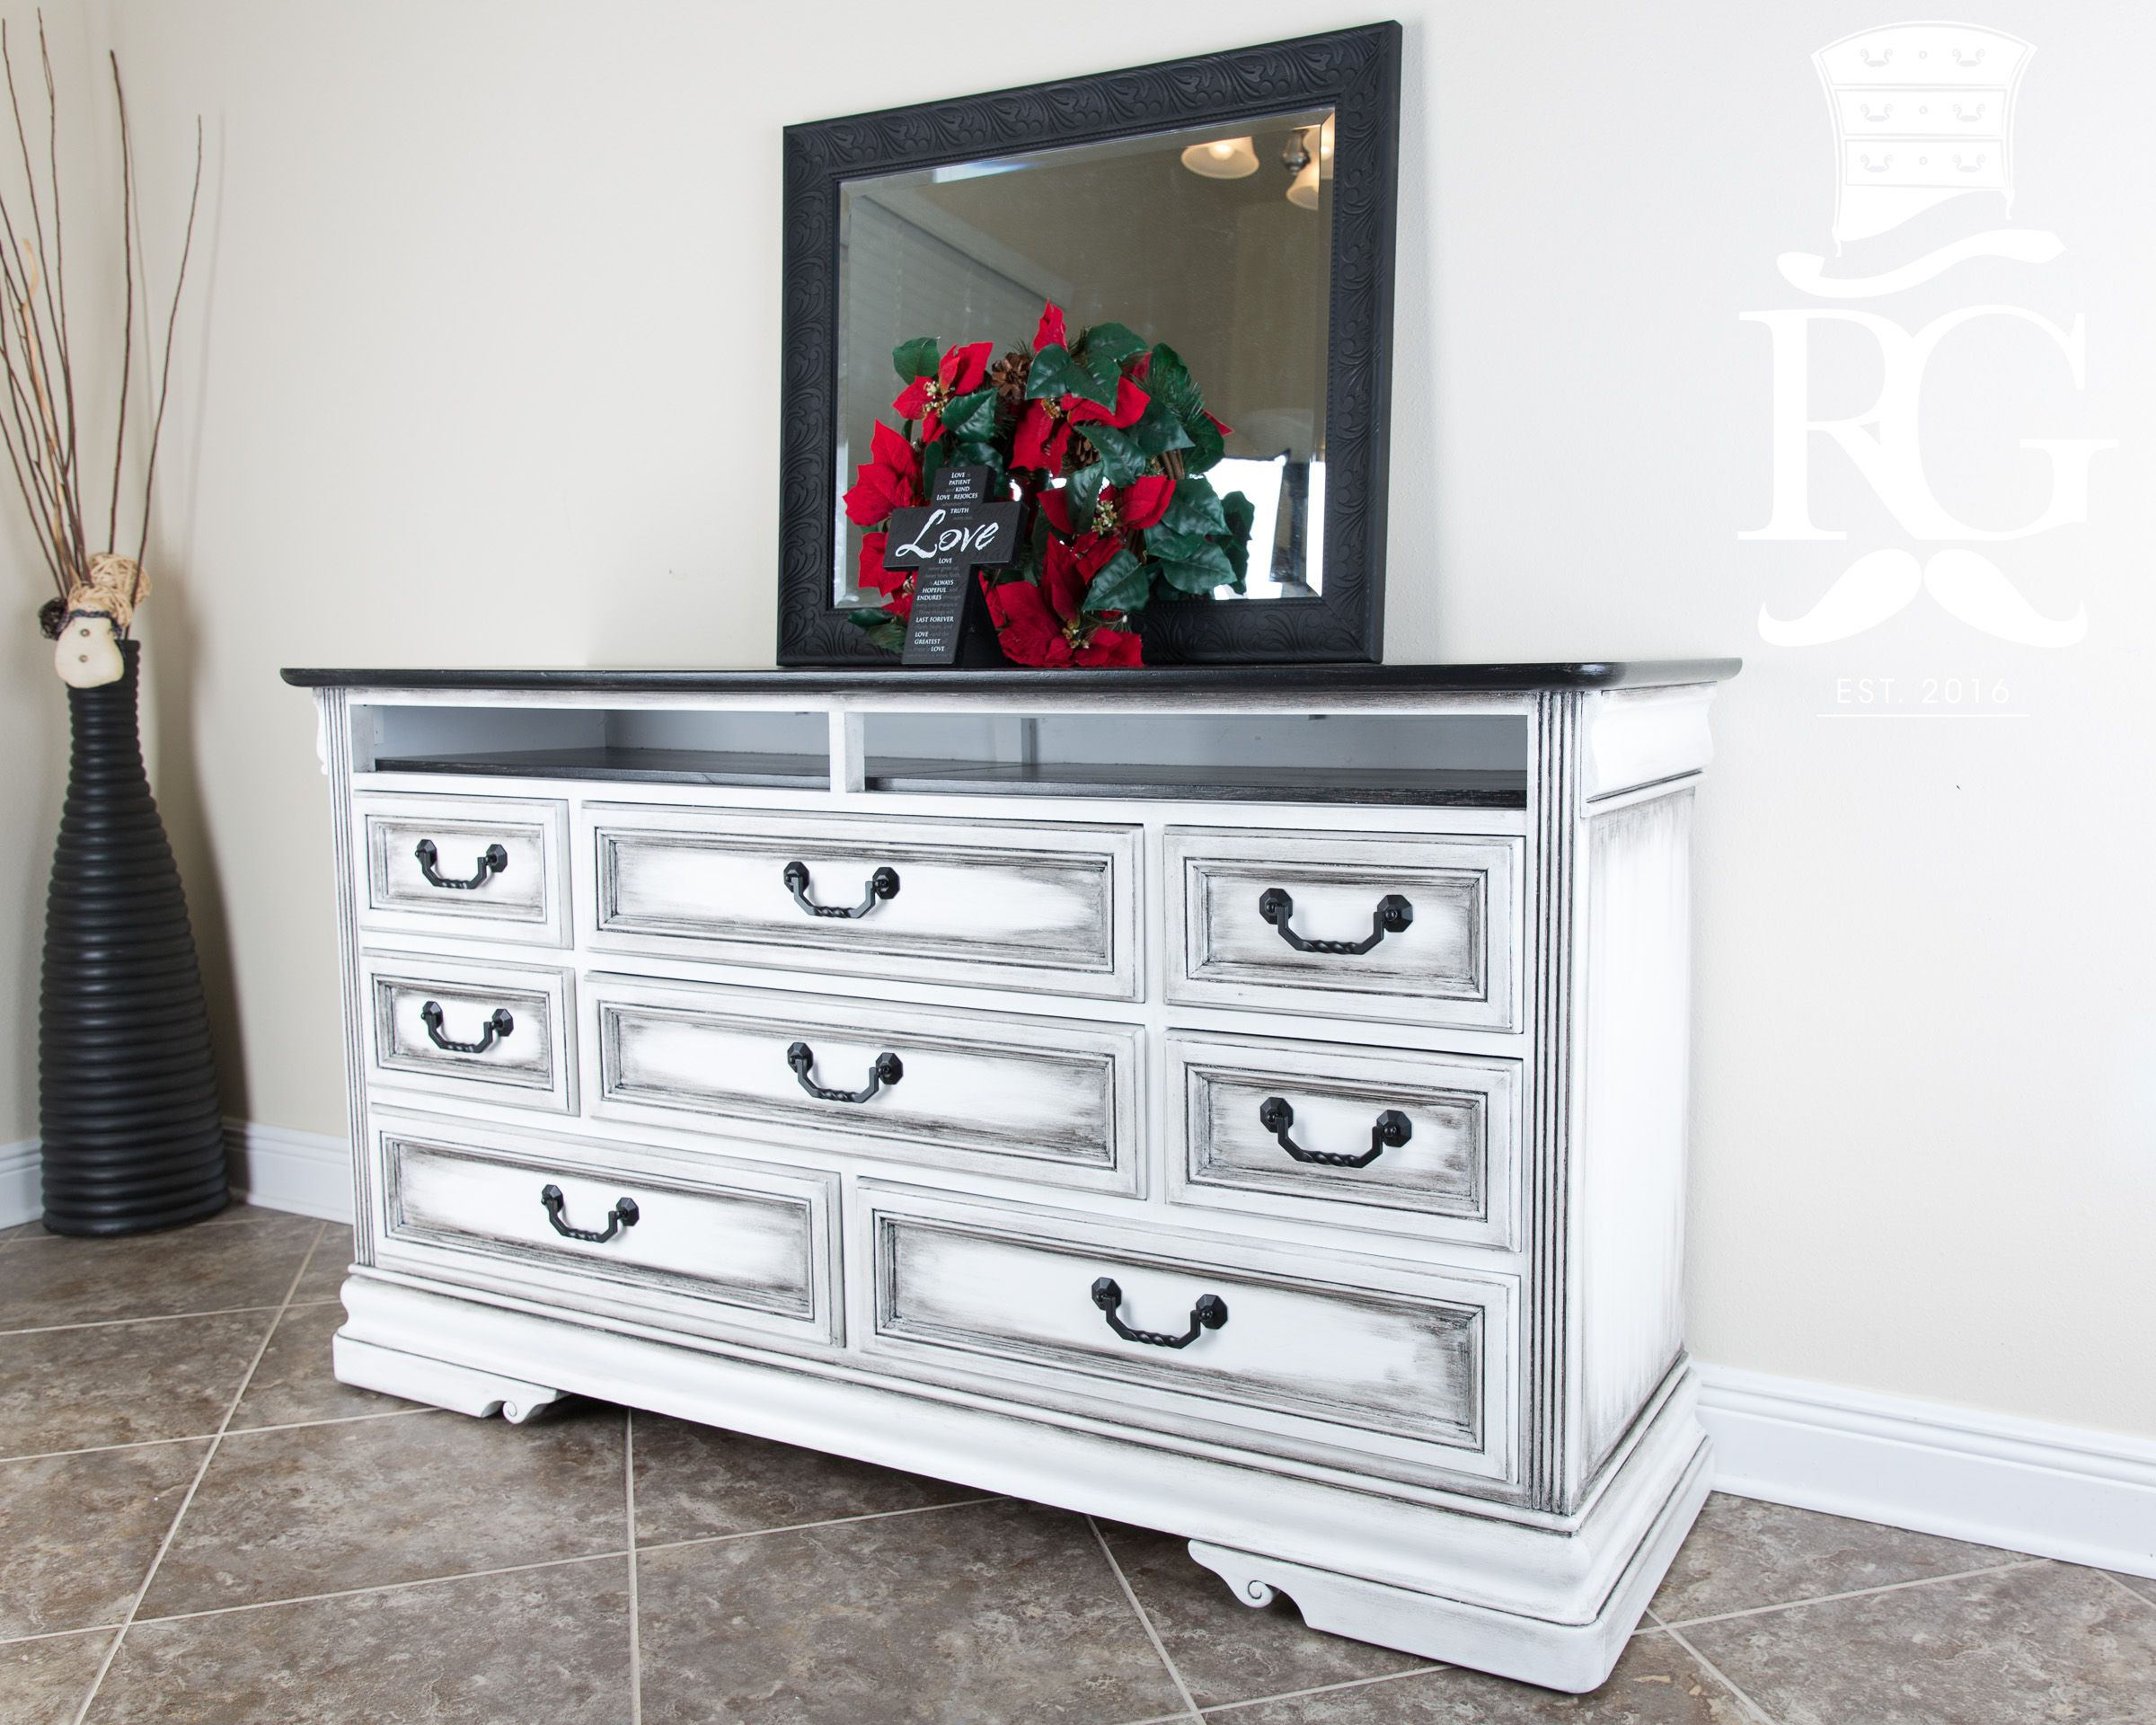 Dresser Upcycle Painted in Annie Sloan Chalk Paint Pure White  Clear Wax   then Black. Dresser Upcycle Painted in Annie Sloan Chalk Paint Pure White